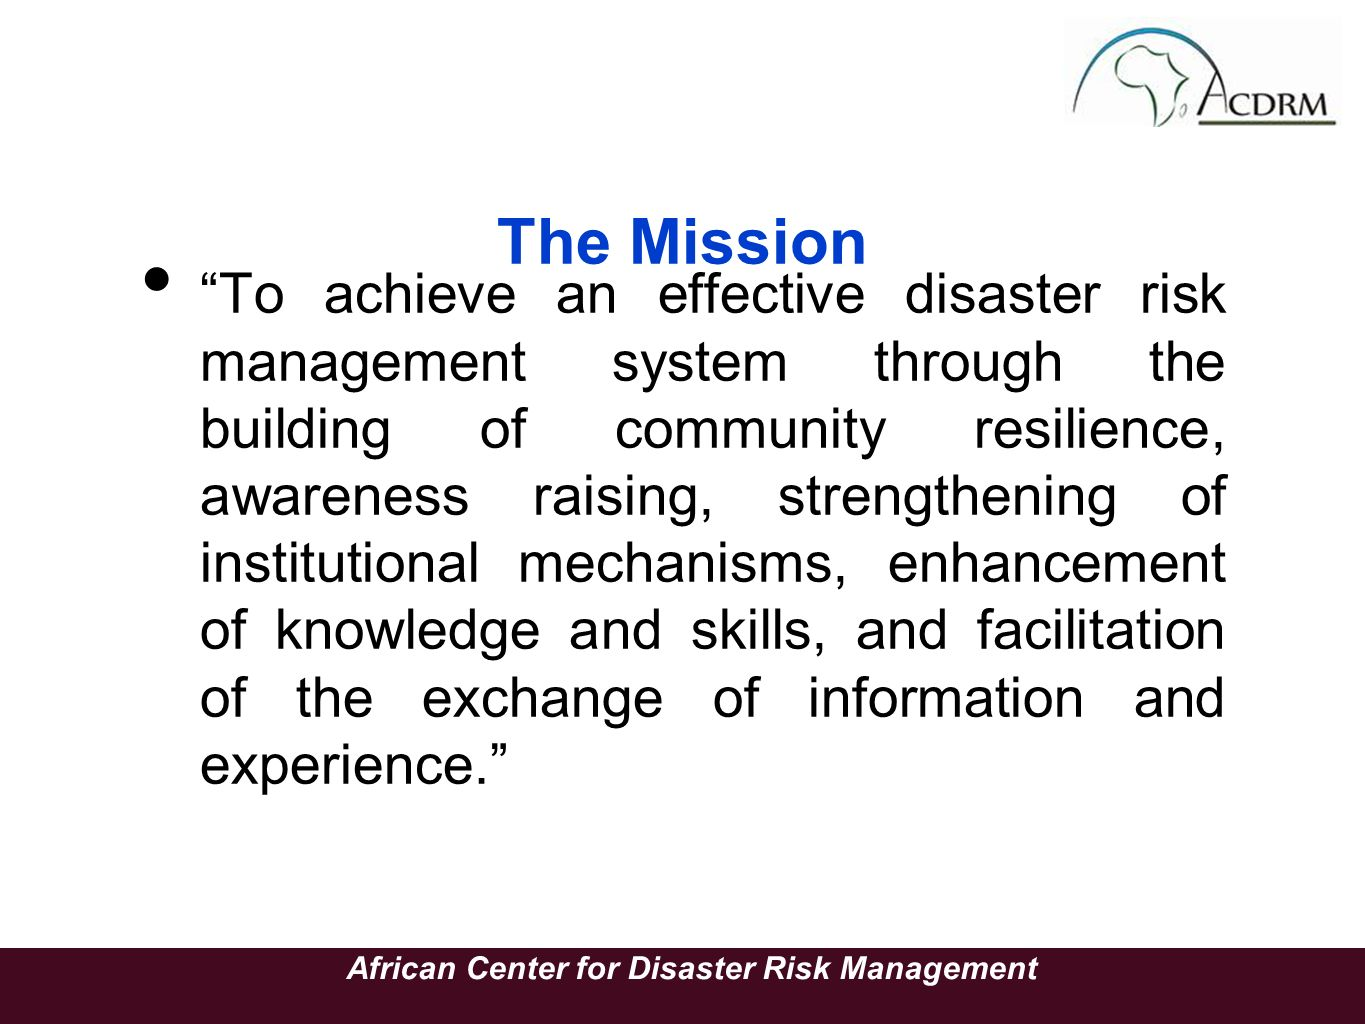 The Mission To achieve an effective disaster risk management system through the building of community resilience, awareness raising, strengthening of institutional mechanisms, enhancement of knowledge and skills, and facilitation of the exchange of information and experience.